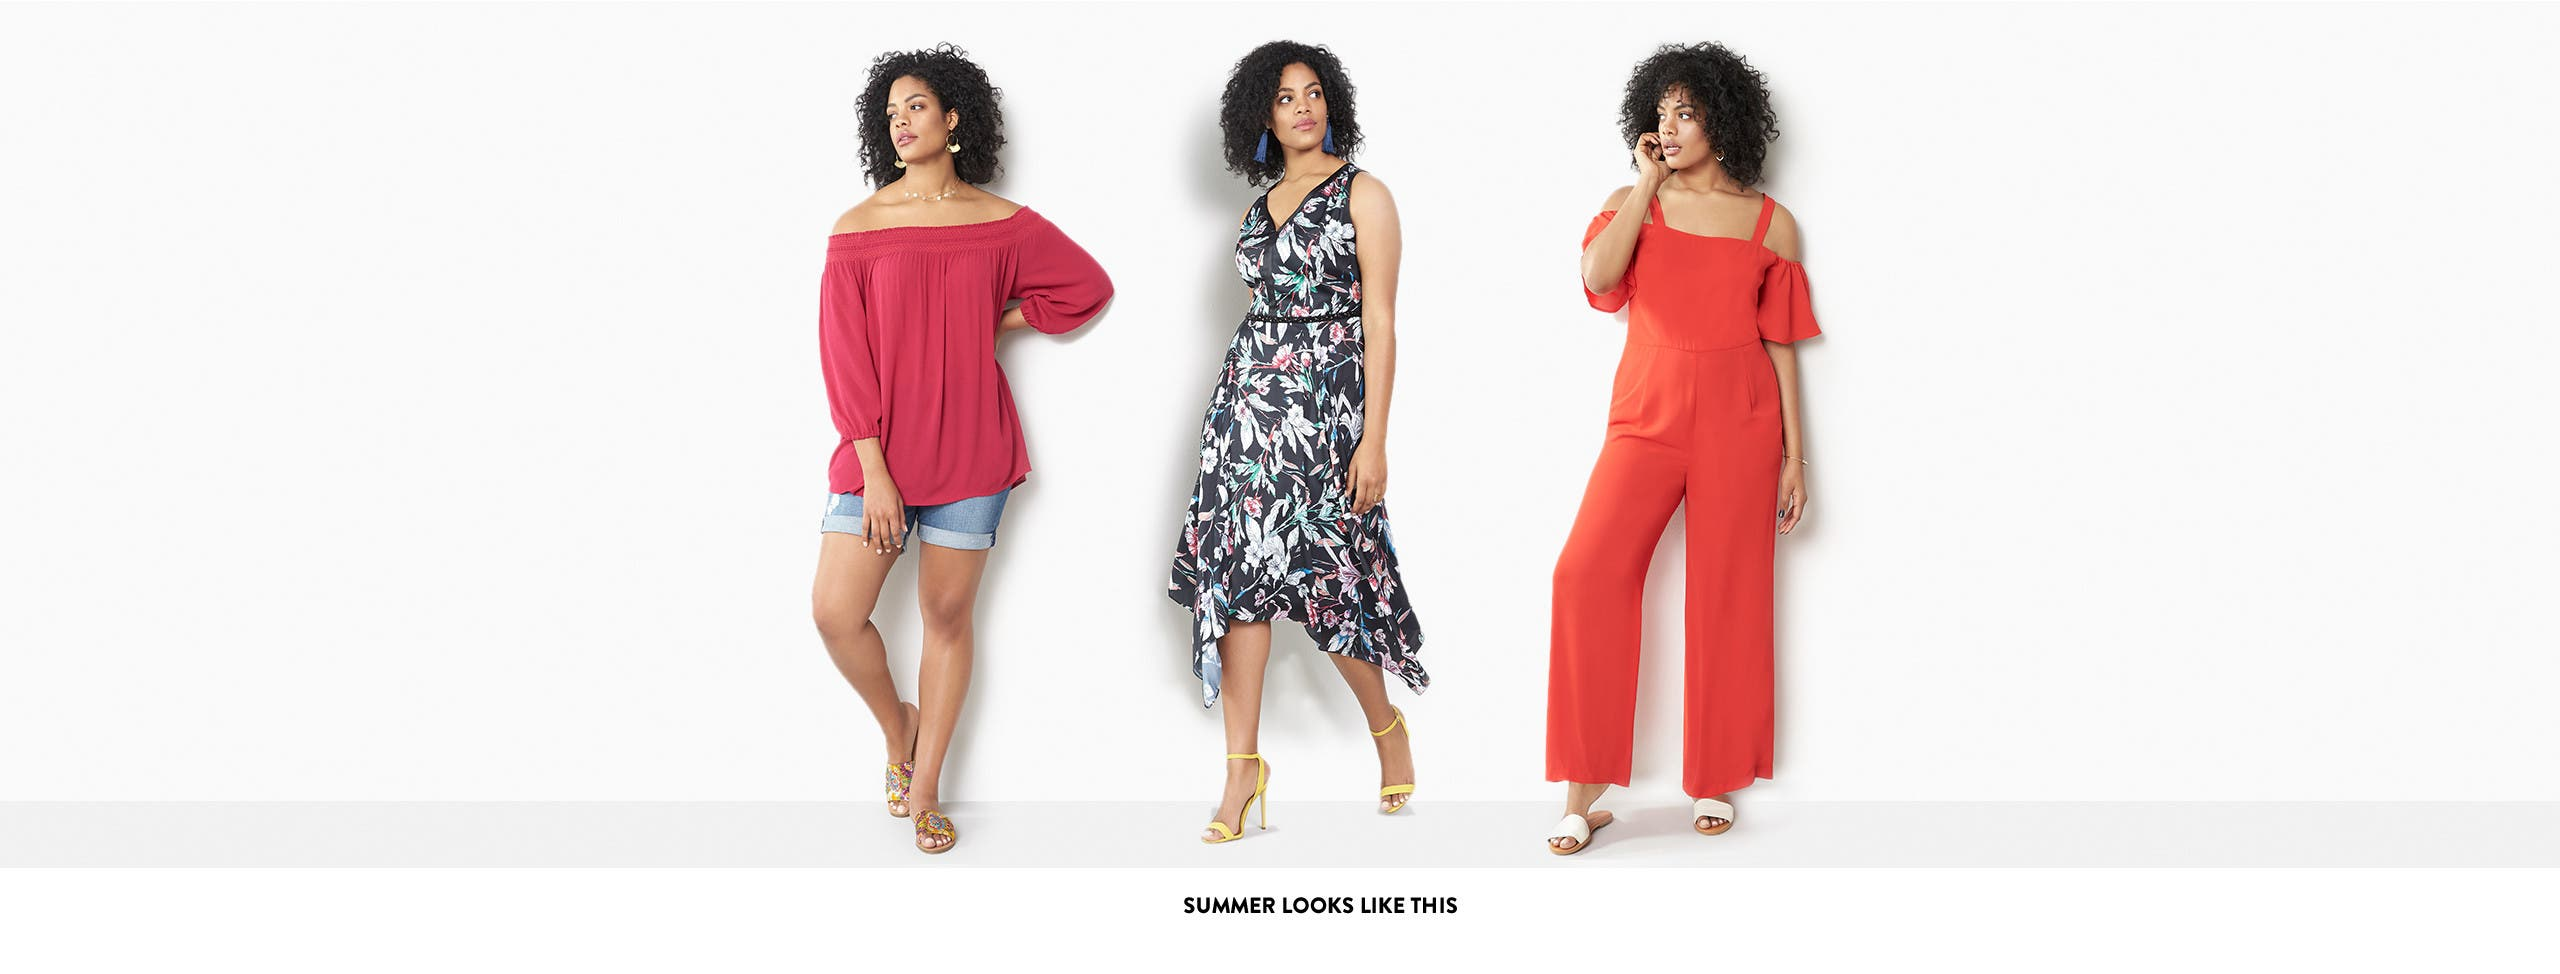 Plus-size summer looks we love.